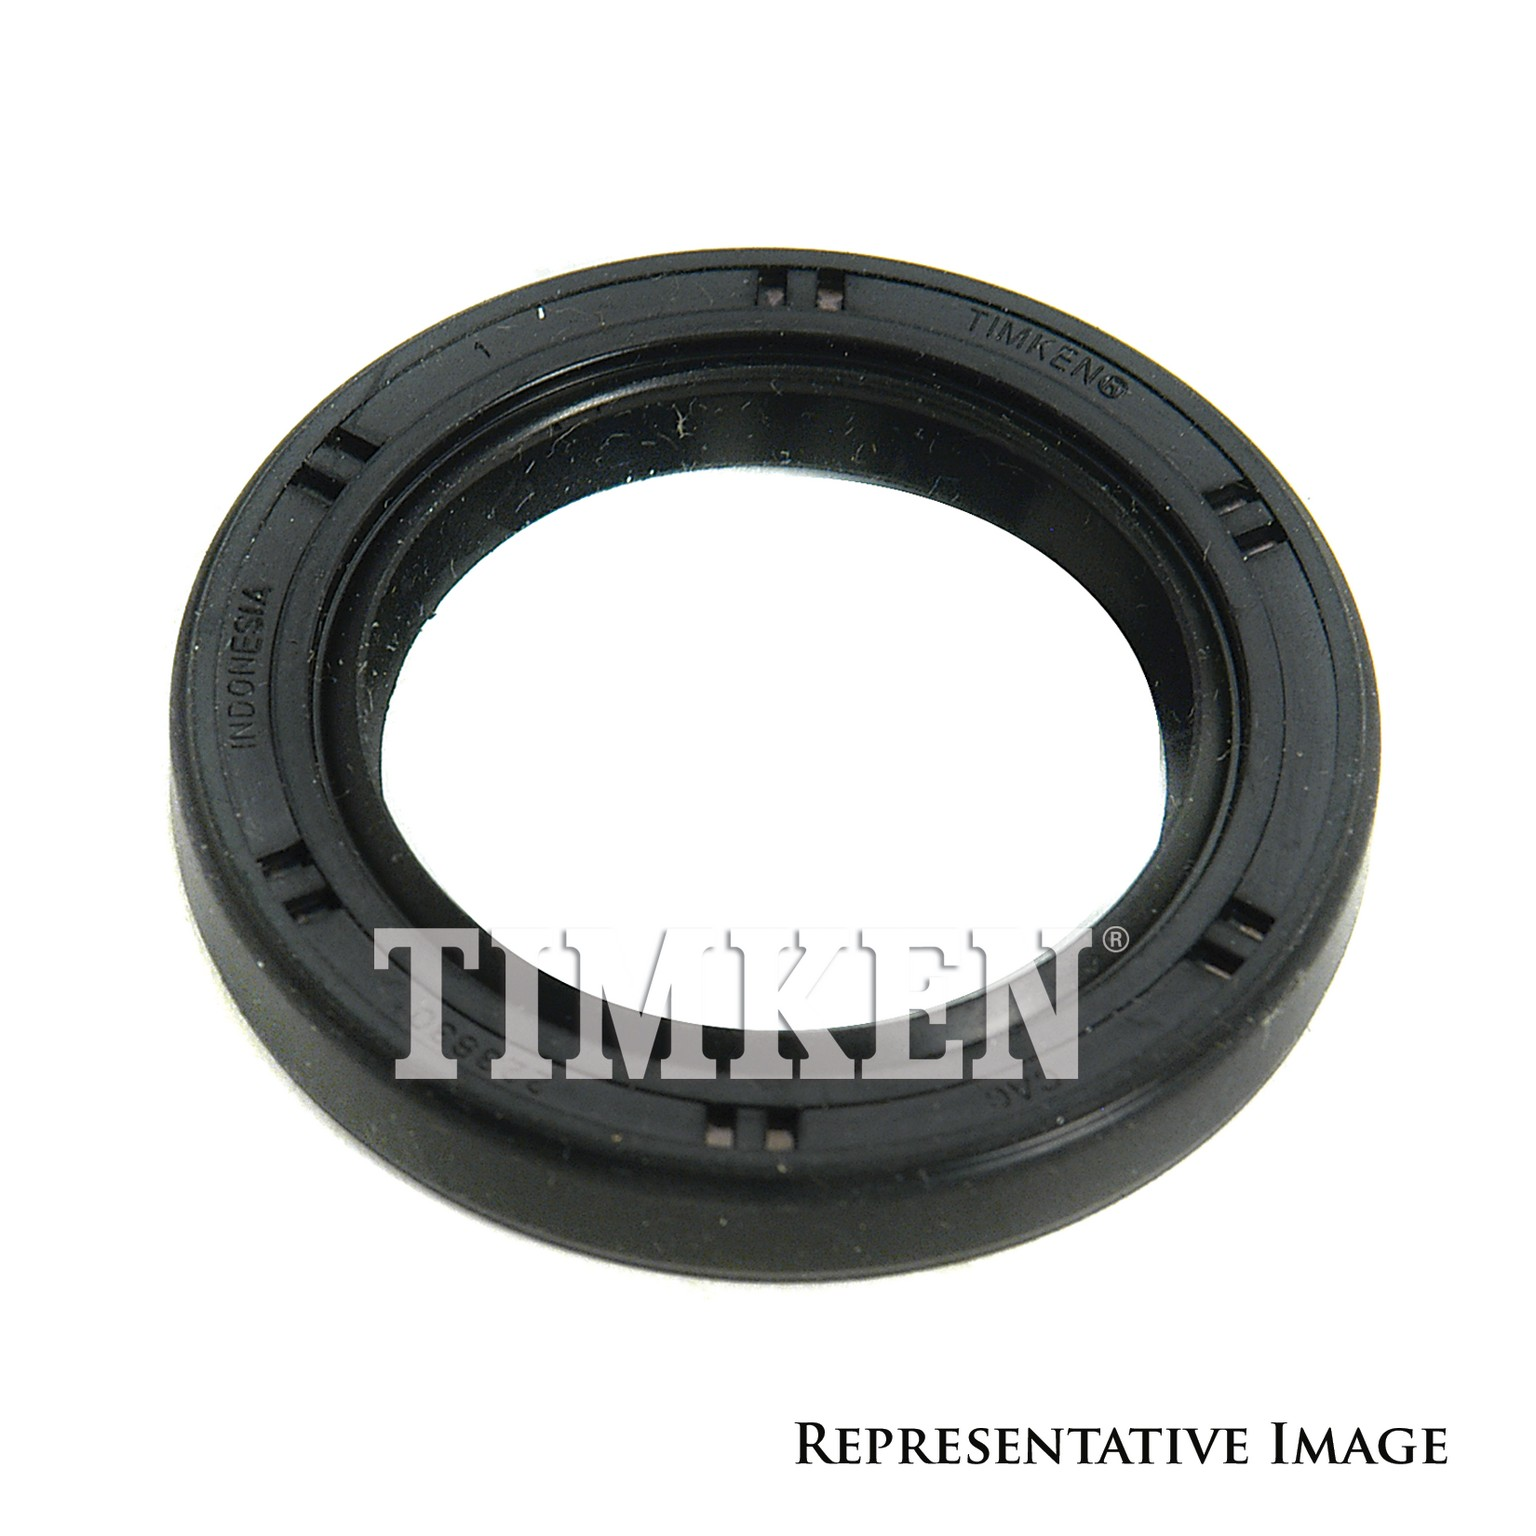 Timken 221207 Automatic Transmission Manual Shaft Seal for Acura CL, EL